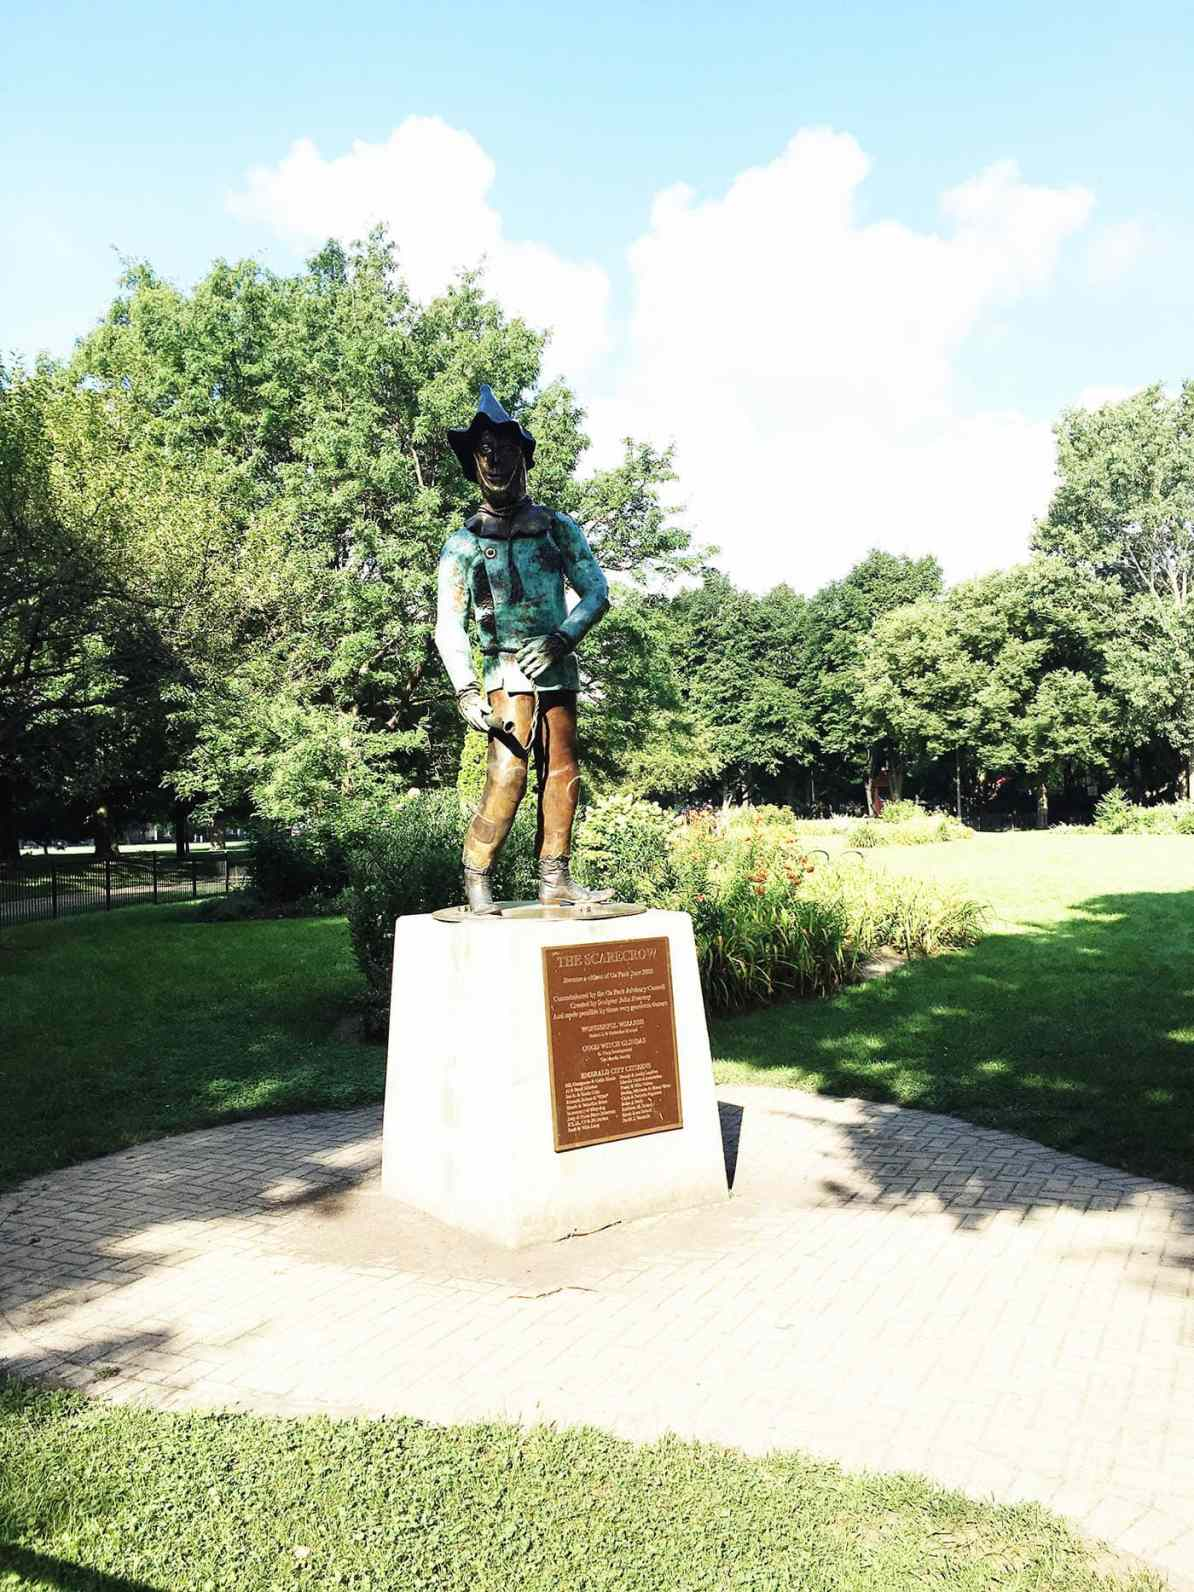 The Scarecrow statue at Oz Park in Chicago, Illinois - a Wizard of Oz themed Park.